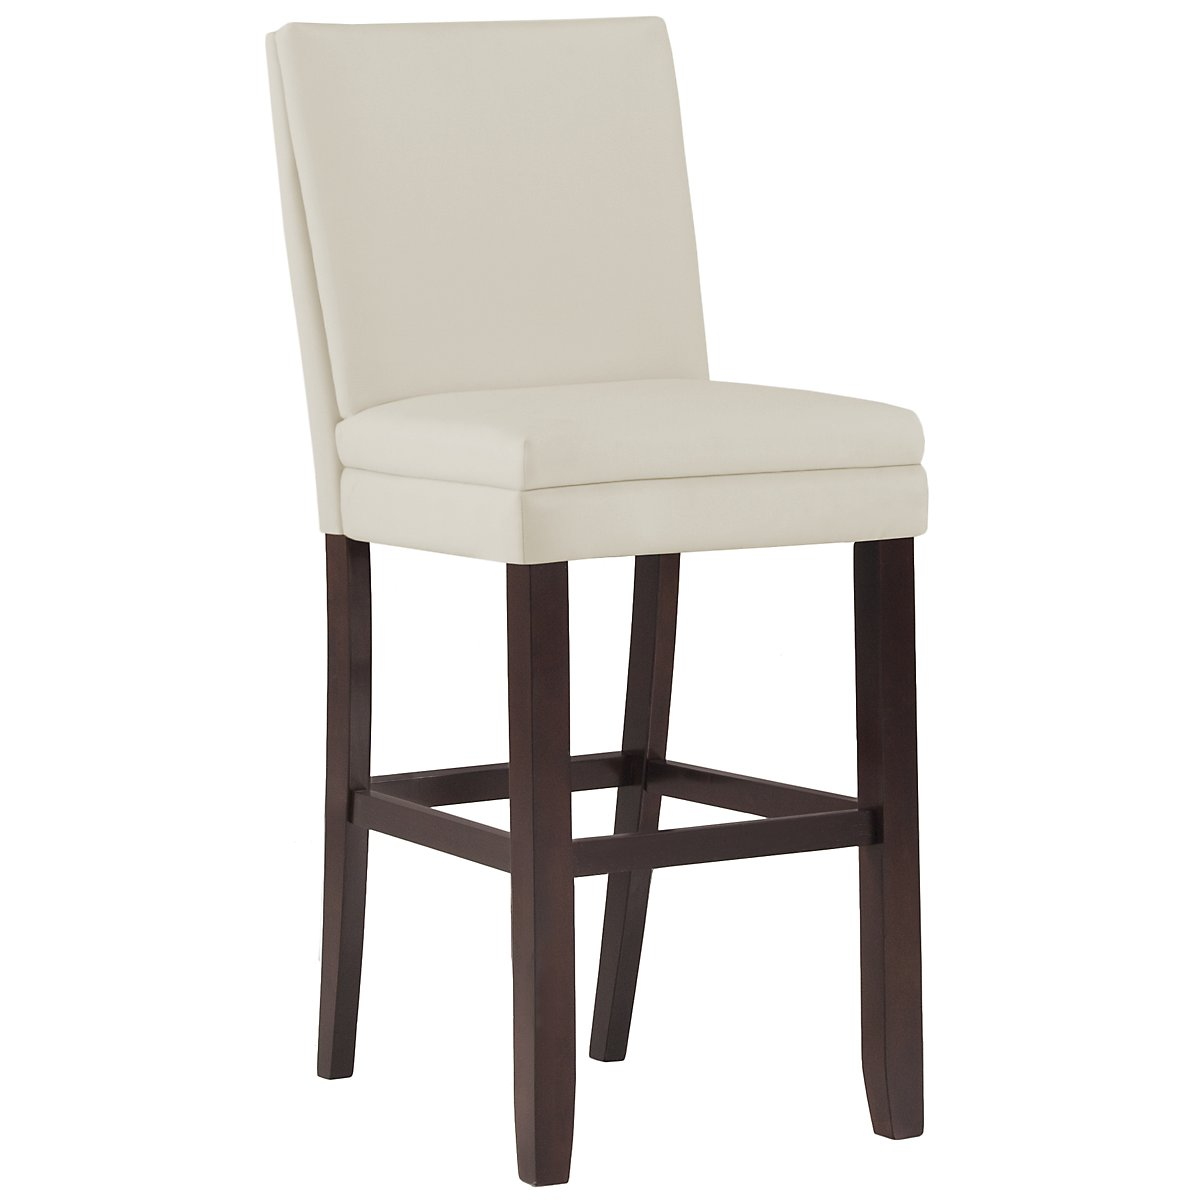 "Antonio White 30"" Bonded Leather Barstool"